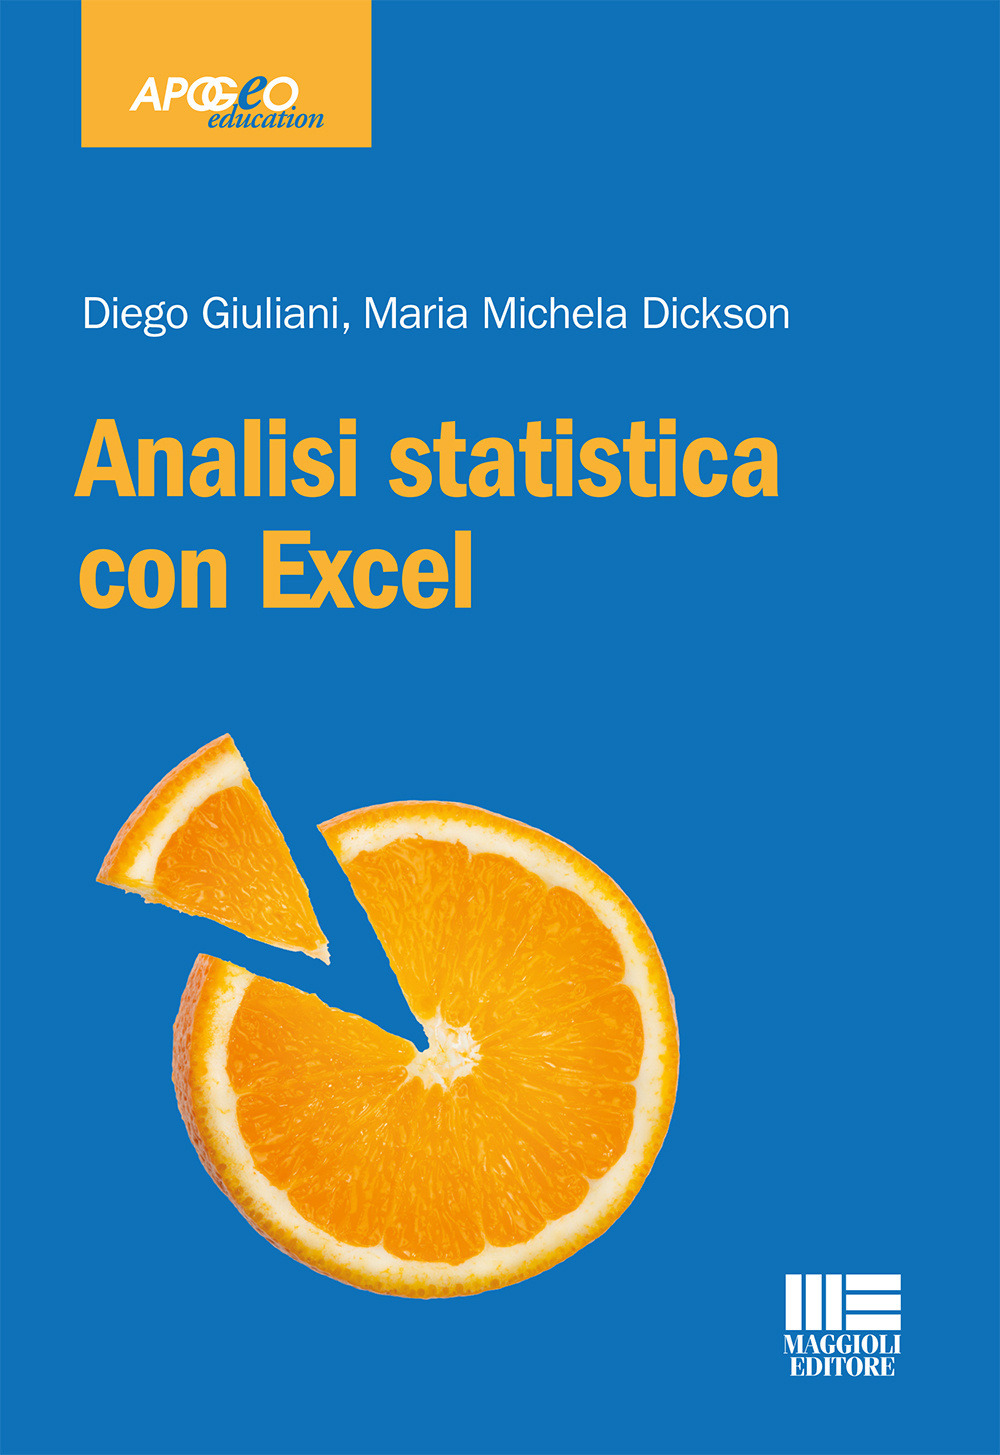 Image of Analisi statistica con Excel